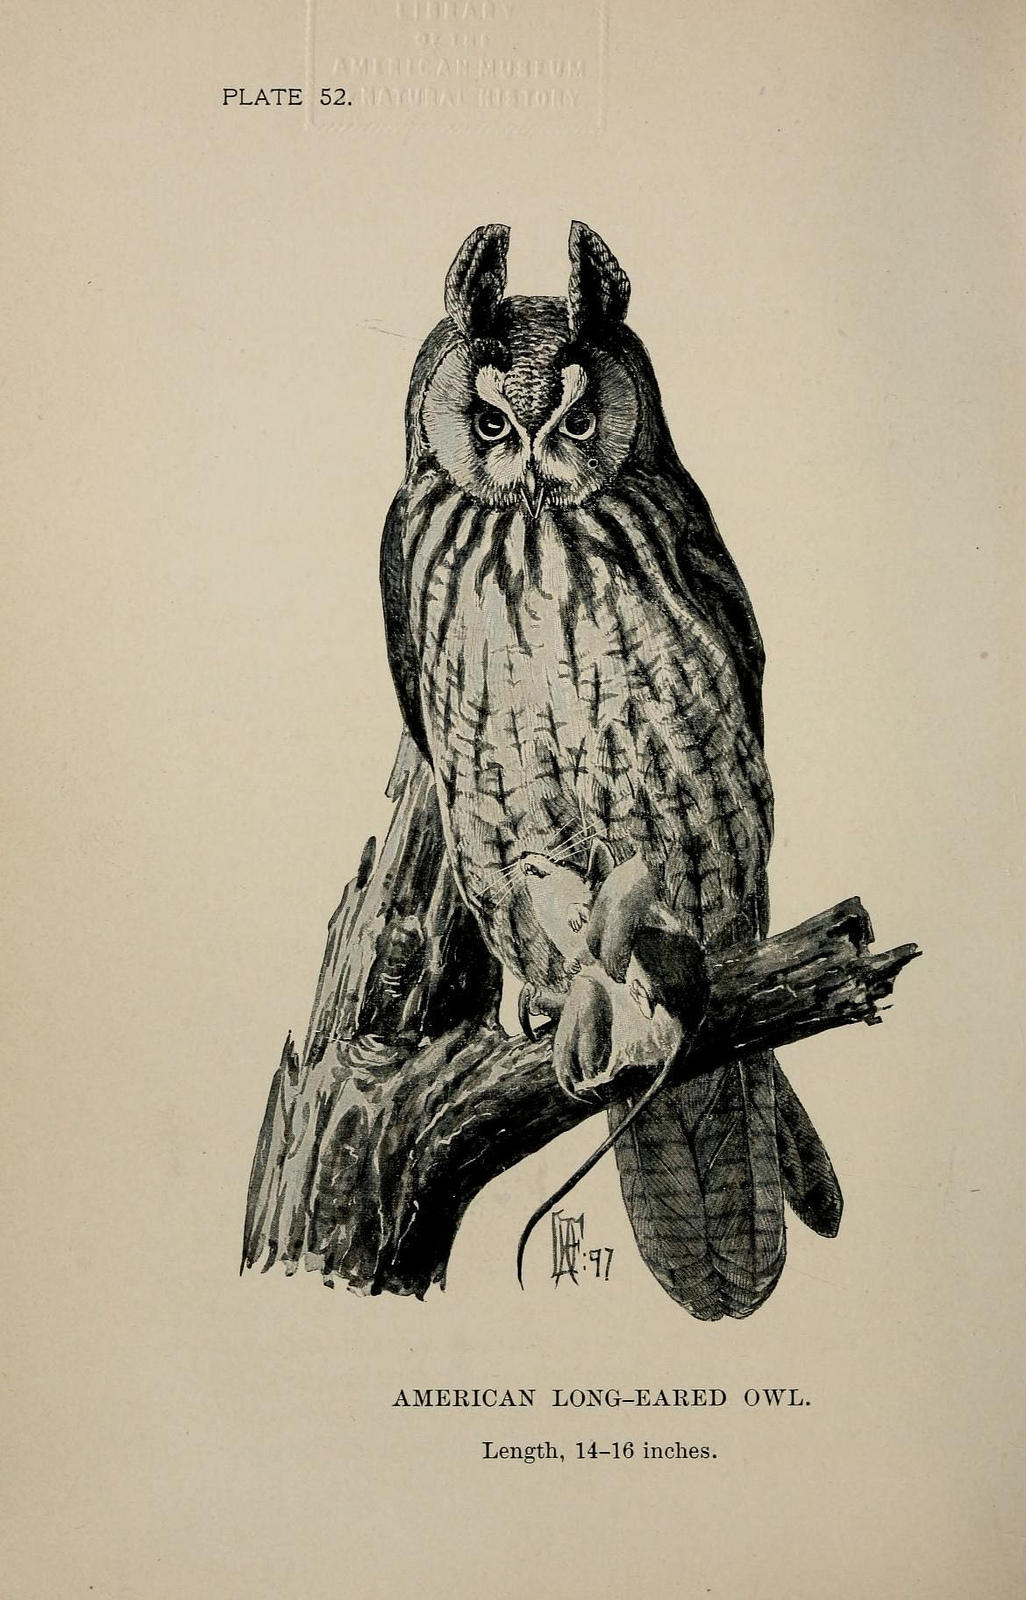 A black and white illustration of an American Long-eared Owl. The owl has two long feather tufts that are raised, resembling ears.